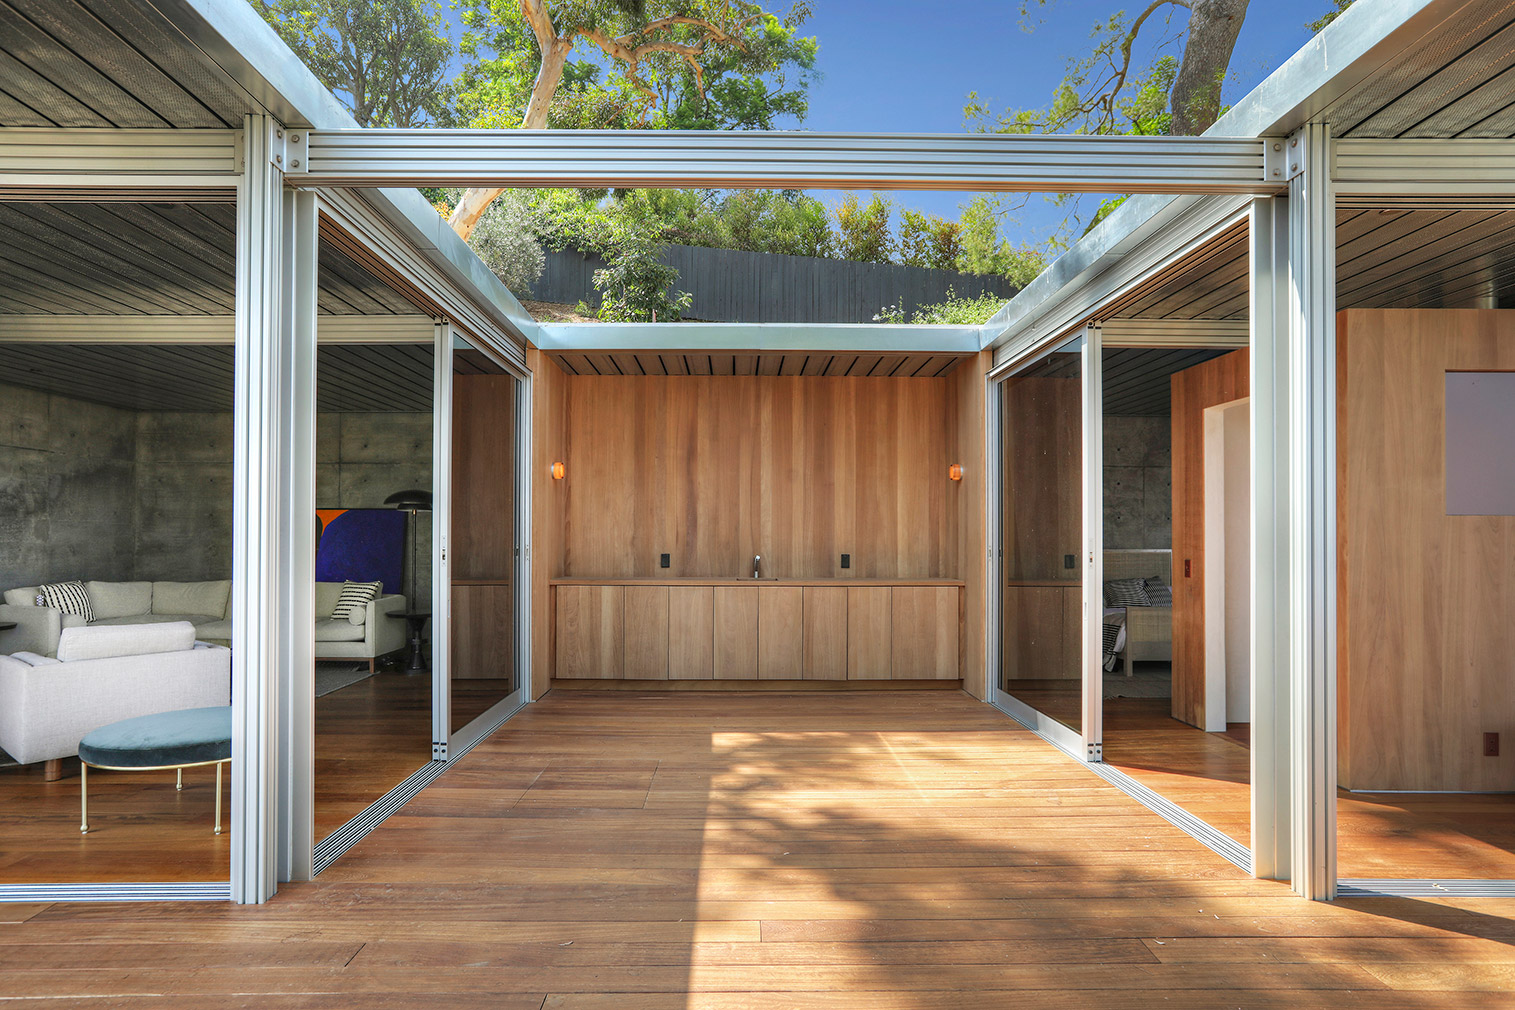 Restored modernist bolthole by Albert Martin lists for $5.1m in LA